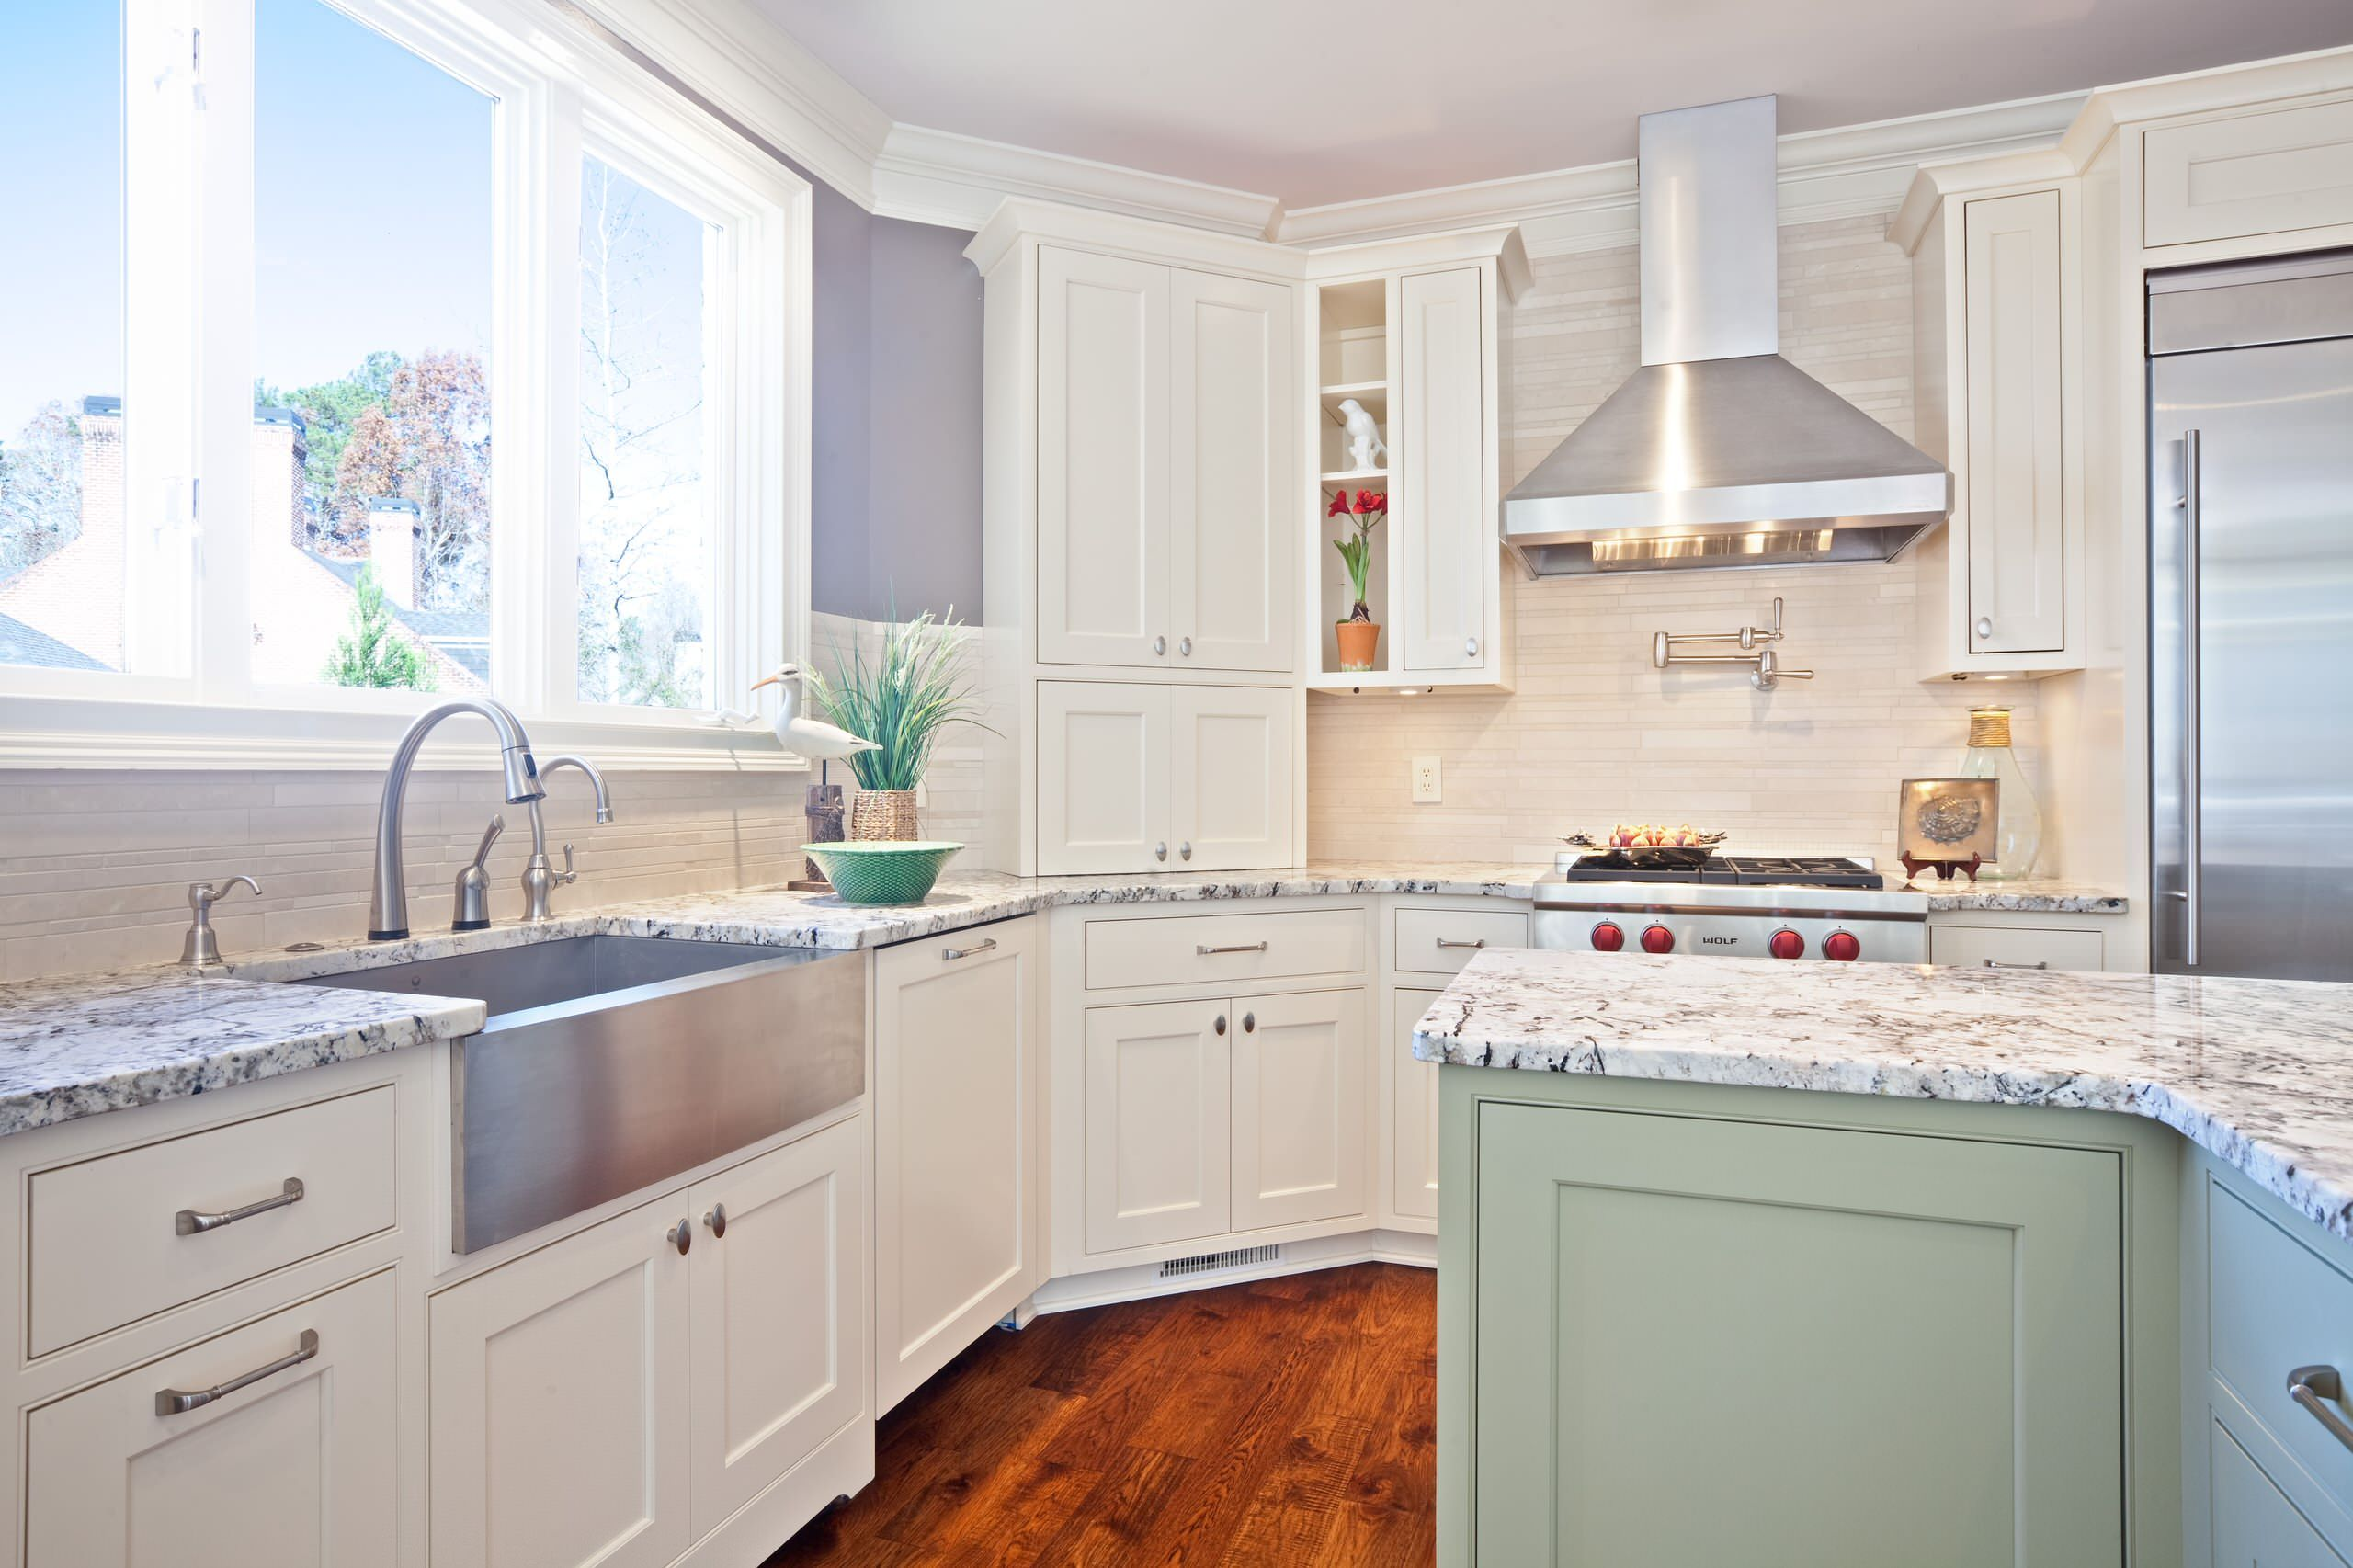 Kitchen White Kitchen Cabinets Quartz Countertops Quartz Countertops With White Kitchen Cabinets Kitchen Tile Backsplash